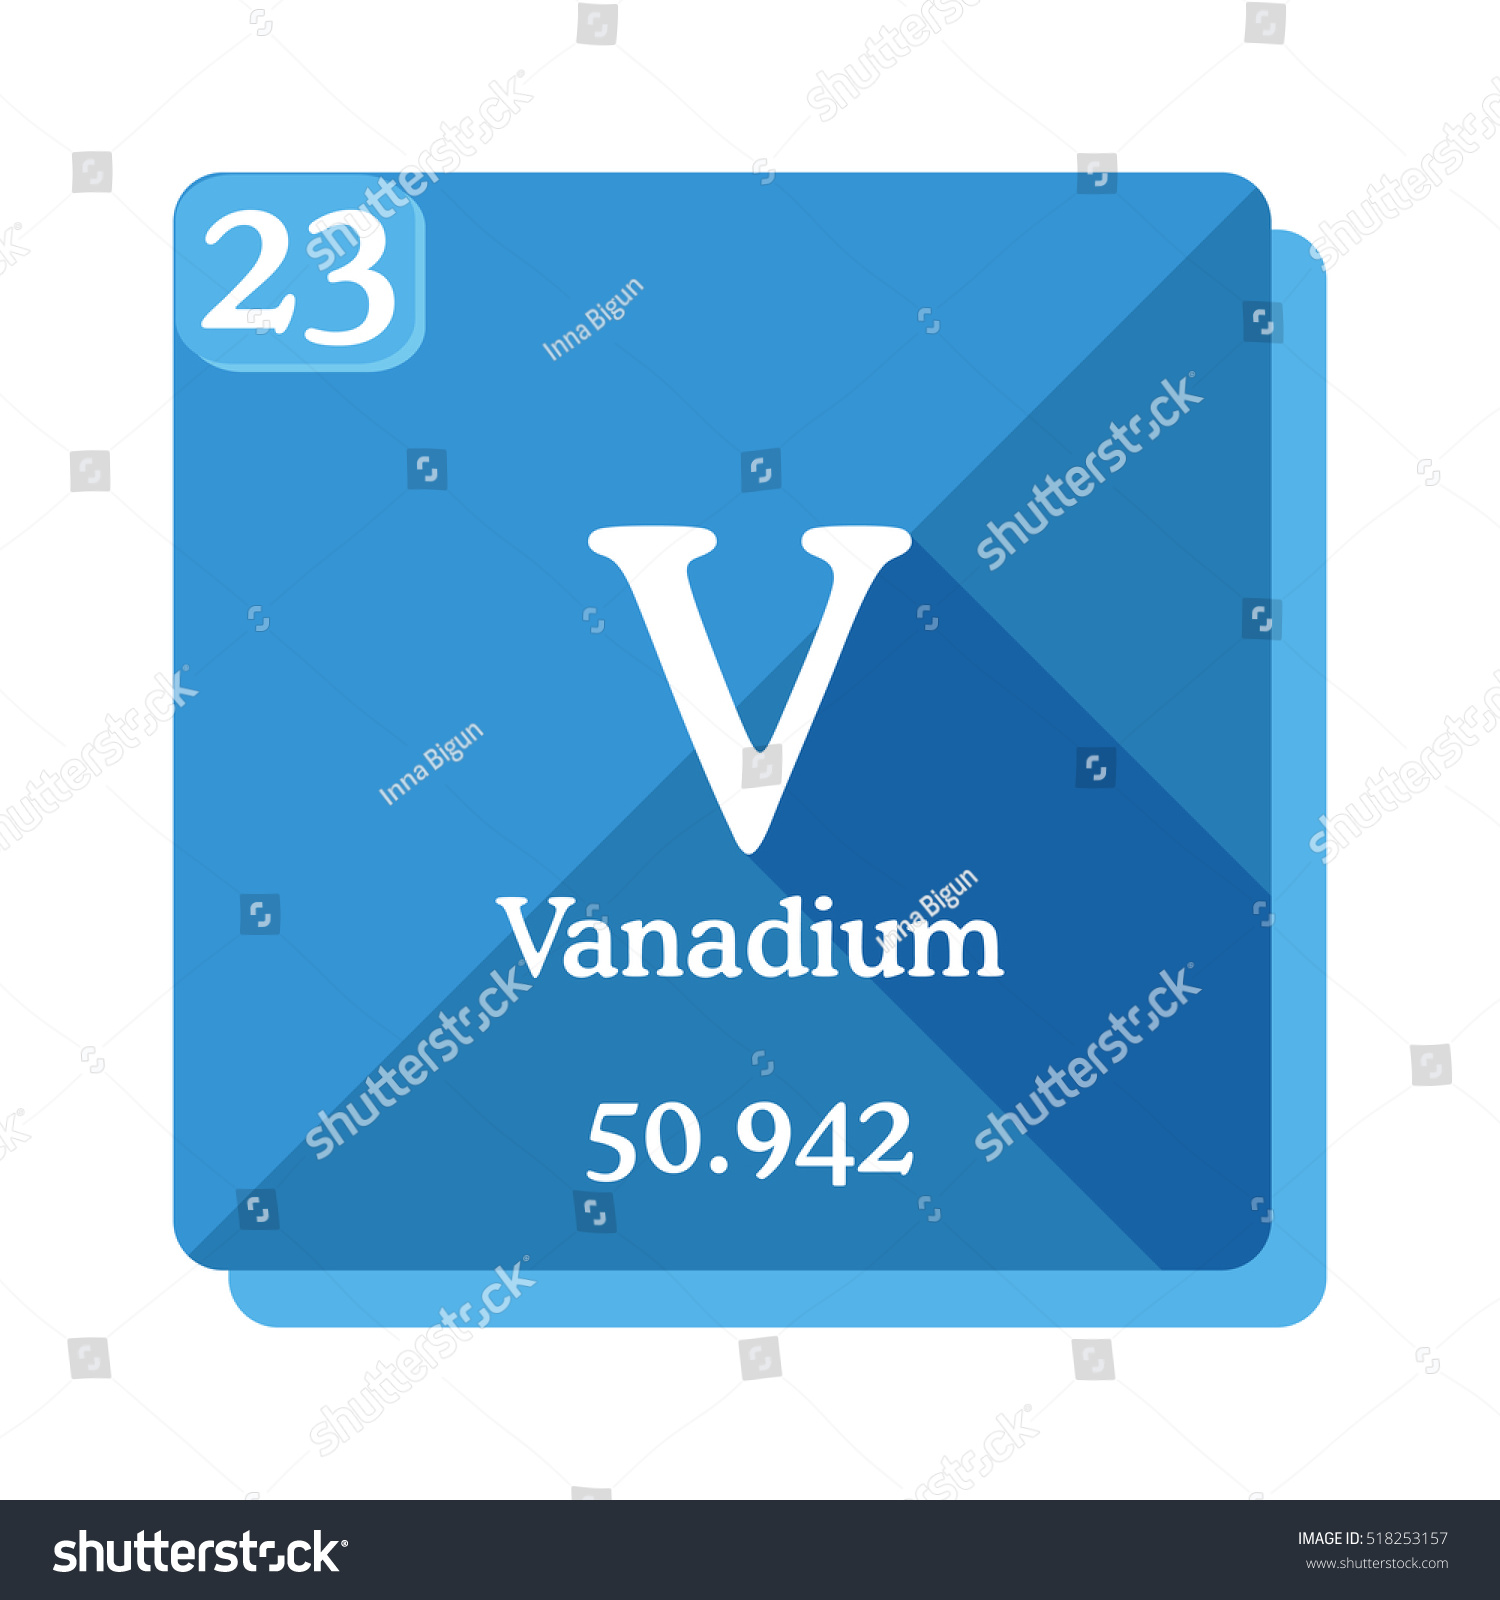 Vanadium v element periodic table flat stock vector hd royalty free vanadium v element of the periodic table flat icon with long shadow urtaz Image collections